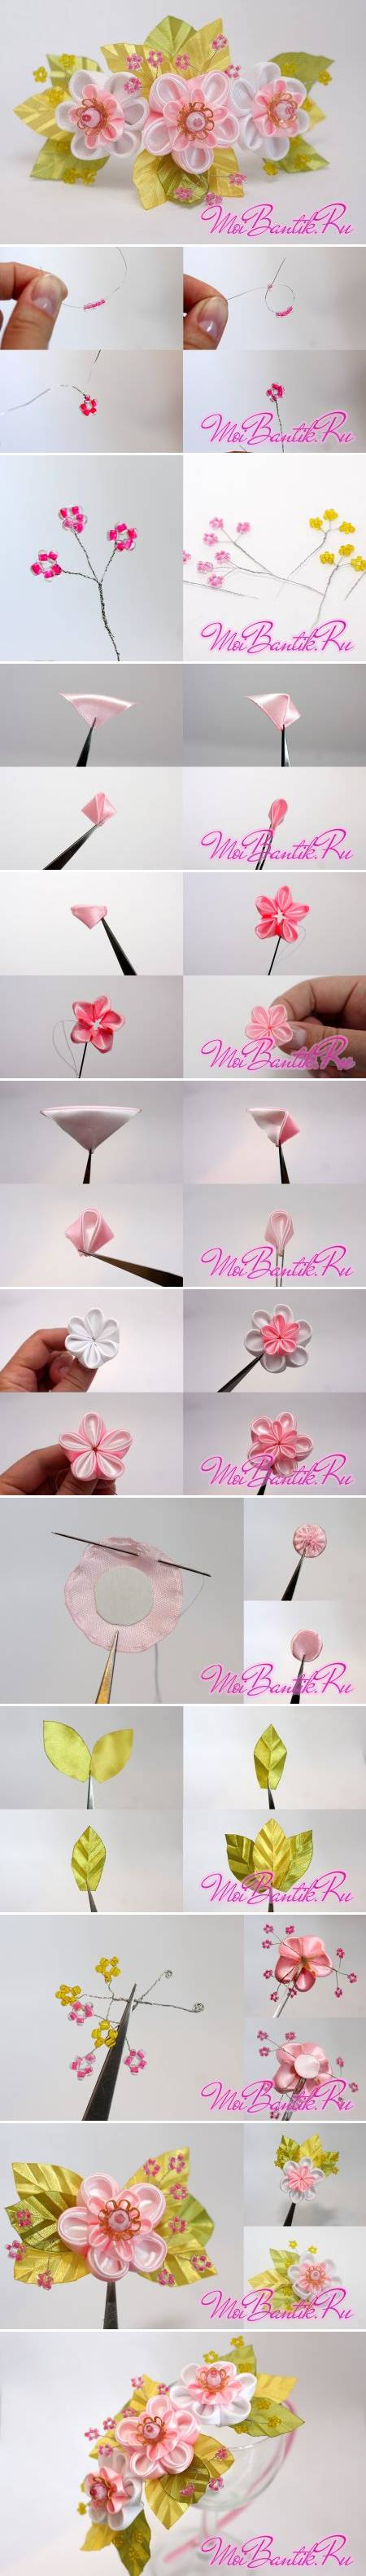 How to Make Golden Sakura Ribbon Flowers step by step DIY tutorial instructions